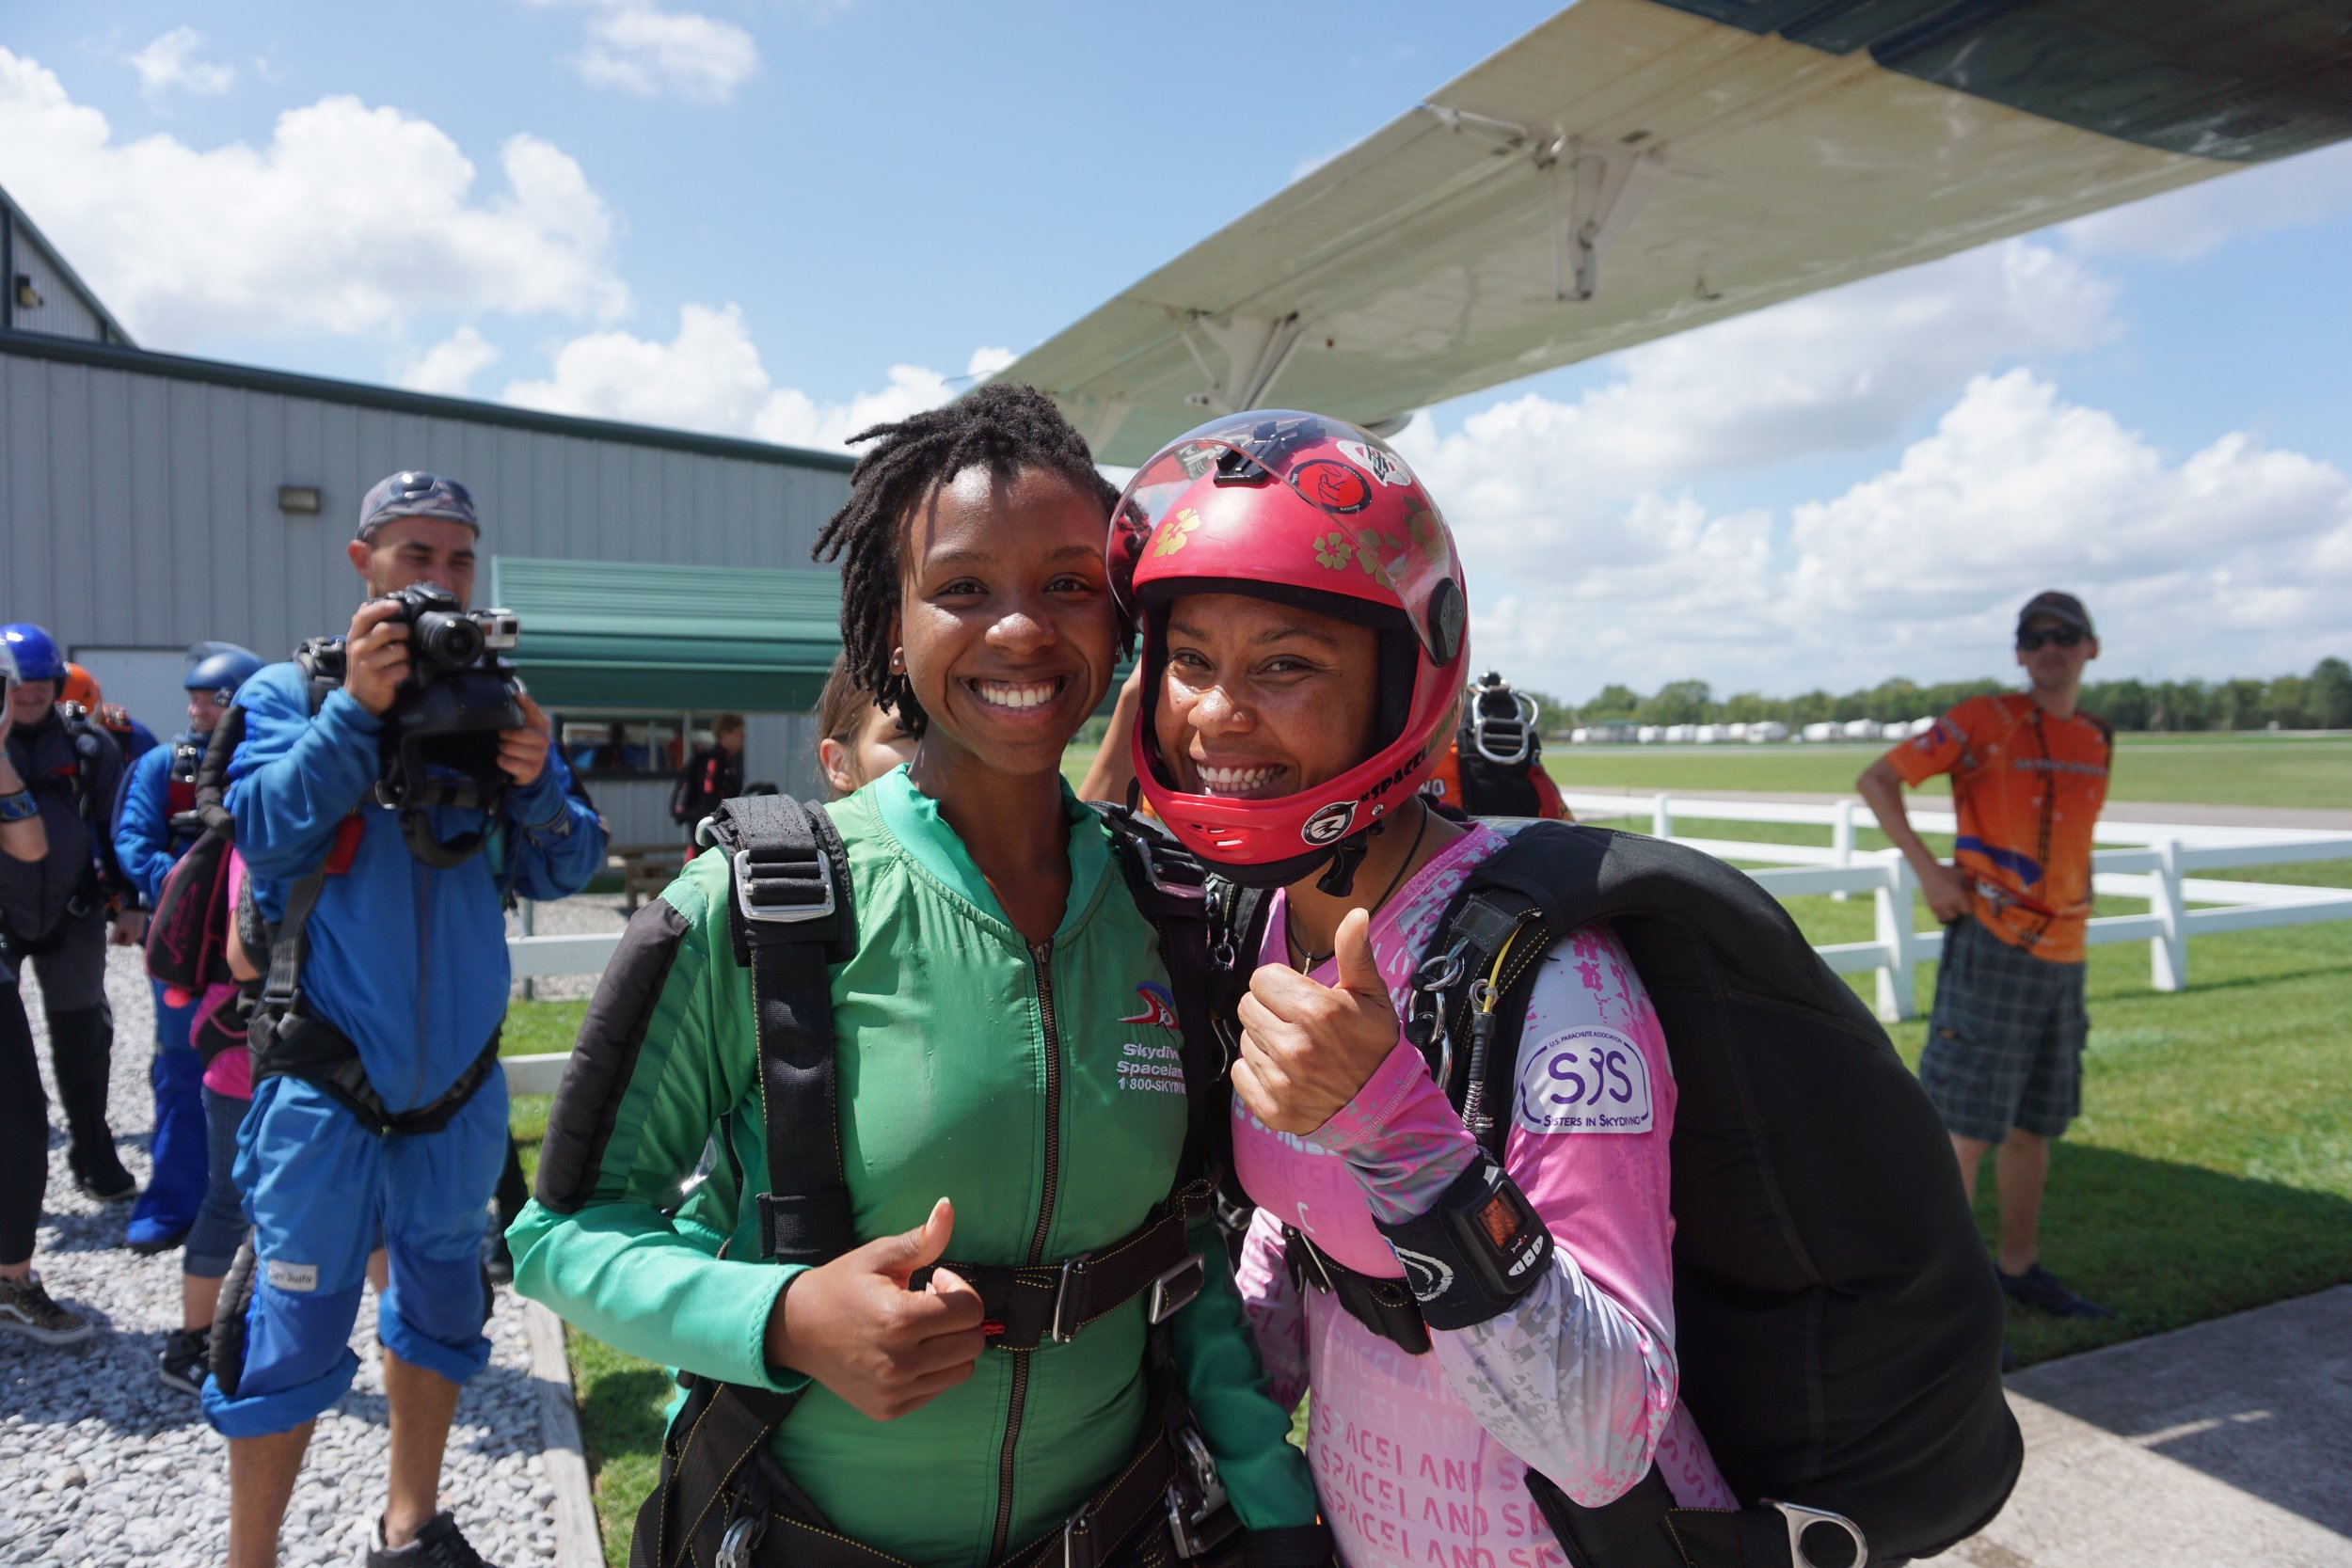 Erendira Sanchez González  (right) poses for a photo with her tandem student at Skydive Spaceland in Houston, TX. Erendira is the only active black woman tandem instructor in the United States. She is also the only black or Latinx female tandem examiner in the U.S.  Photo courtesy of    Woodbury Roland